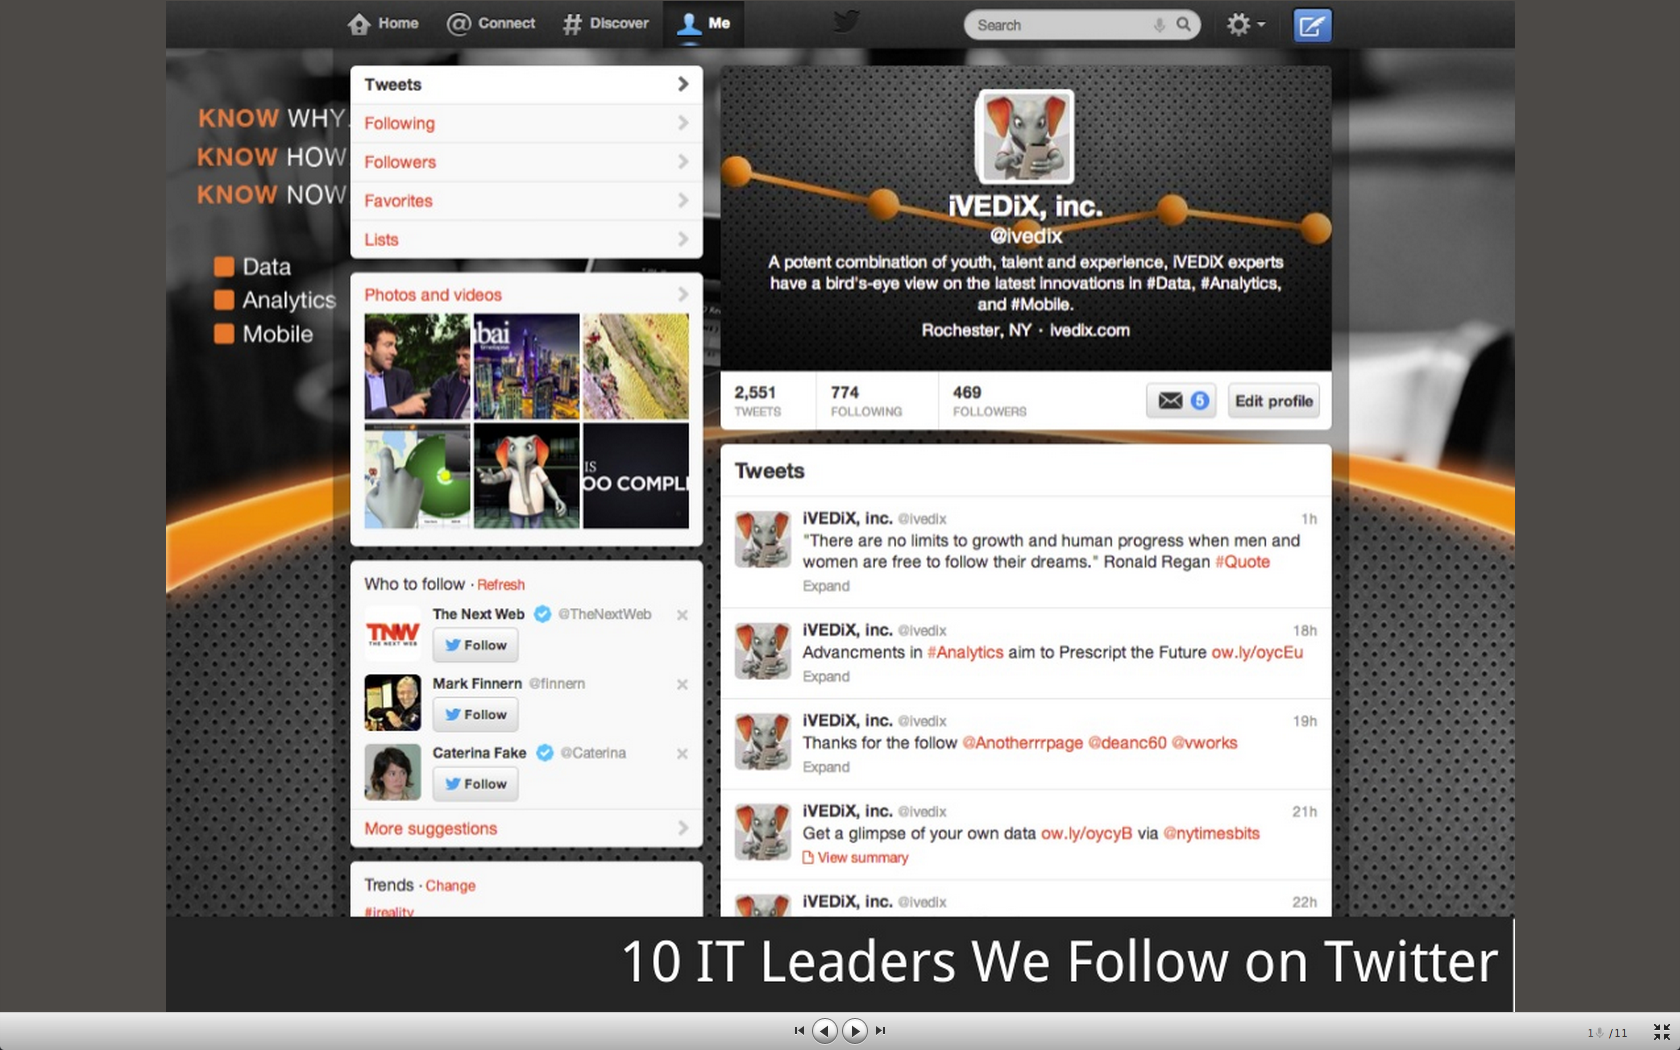 10 IT Leaders We Follow On Twitter